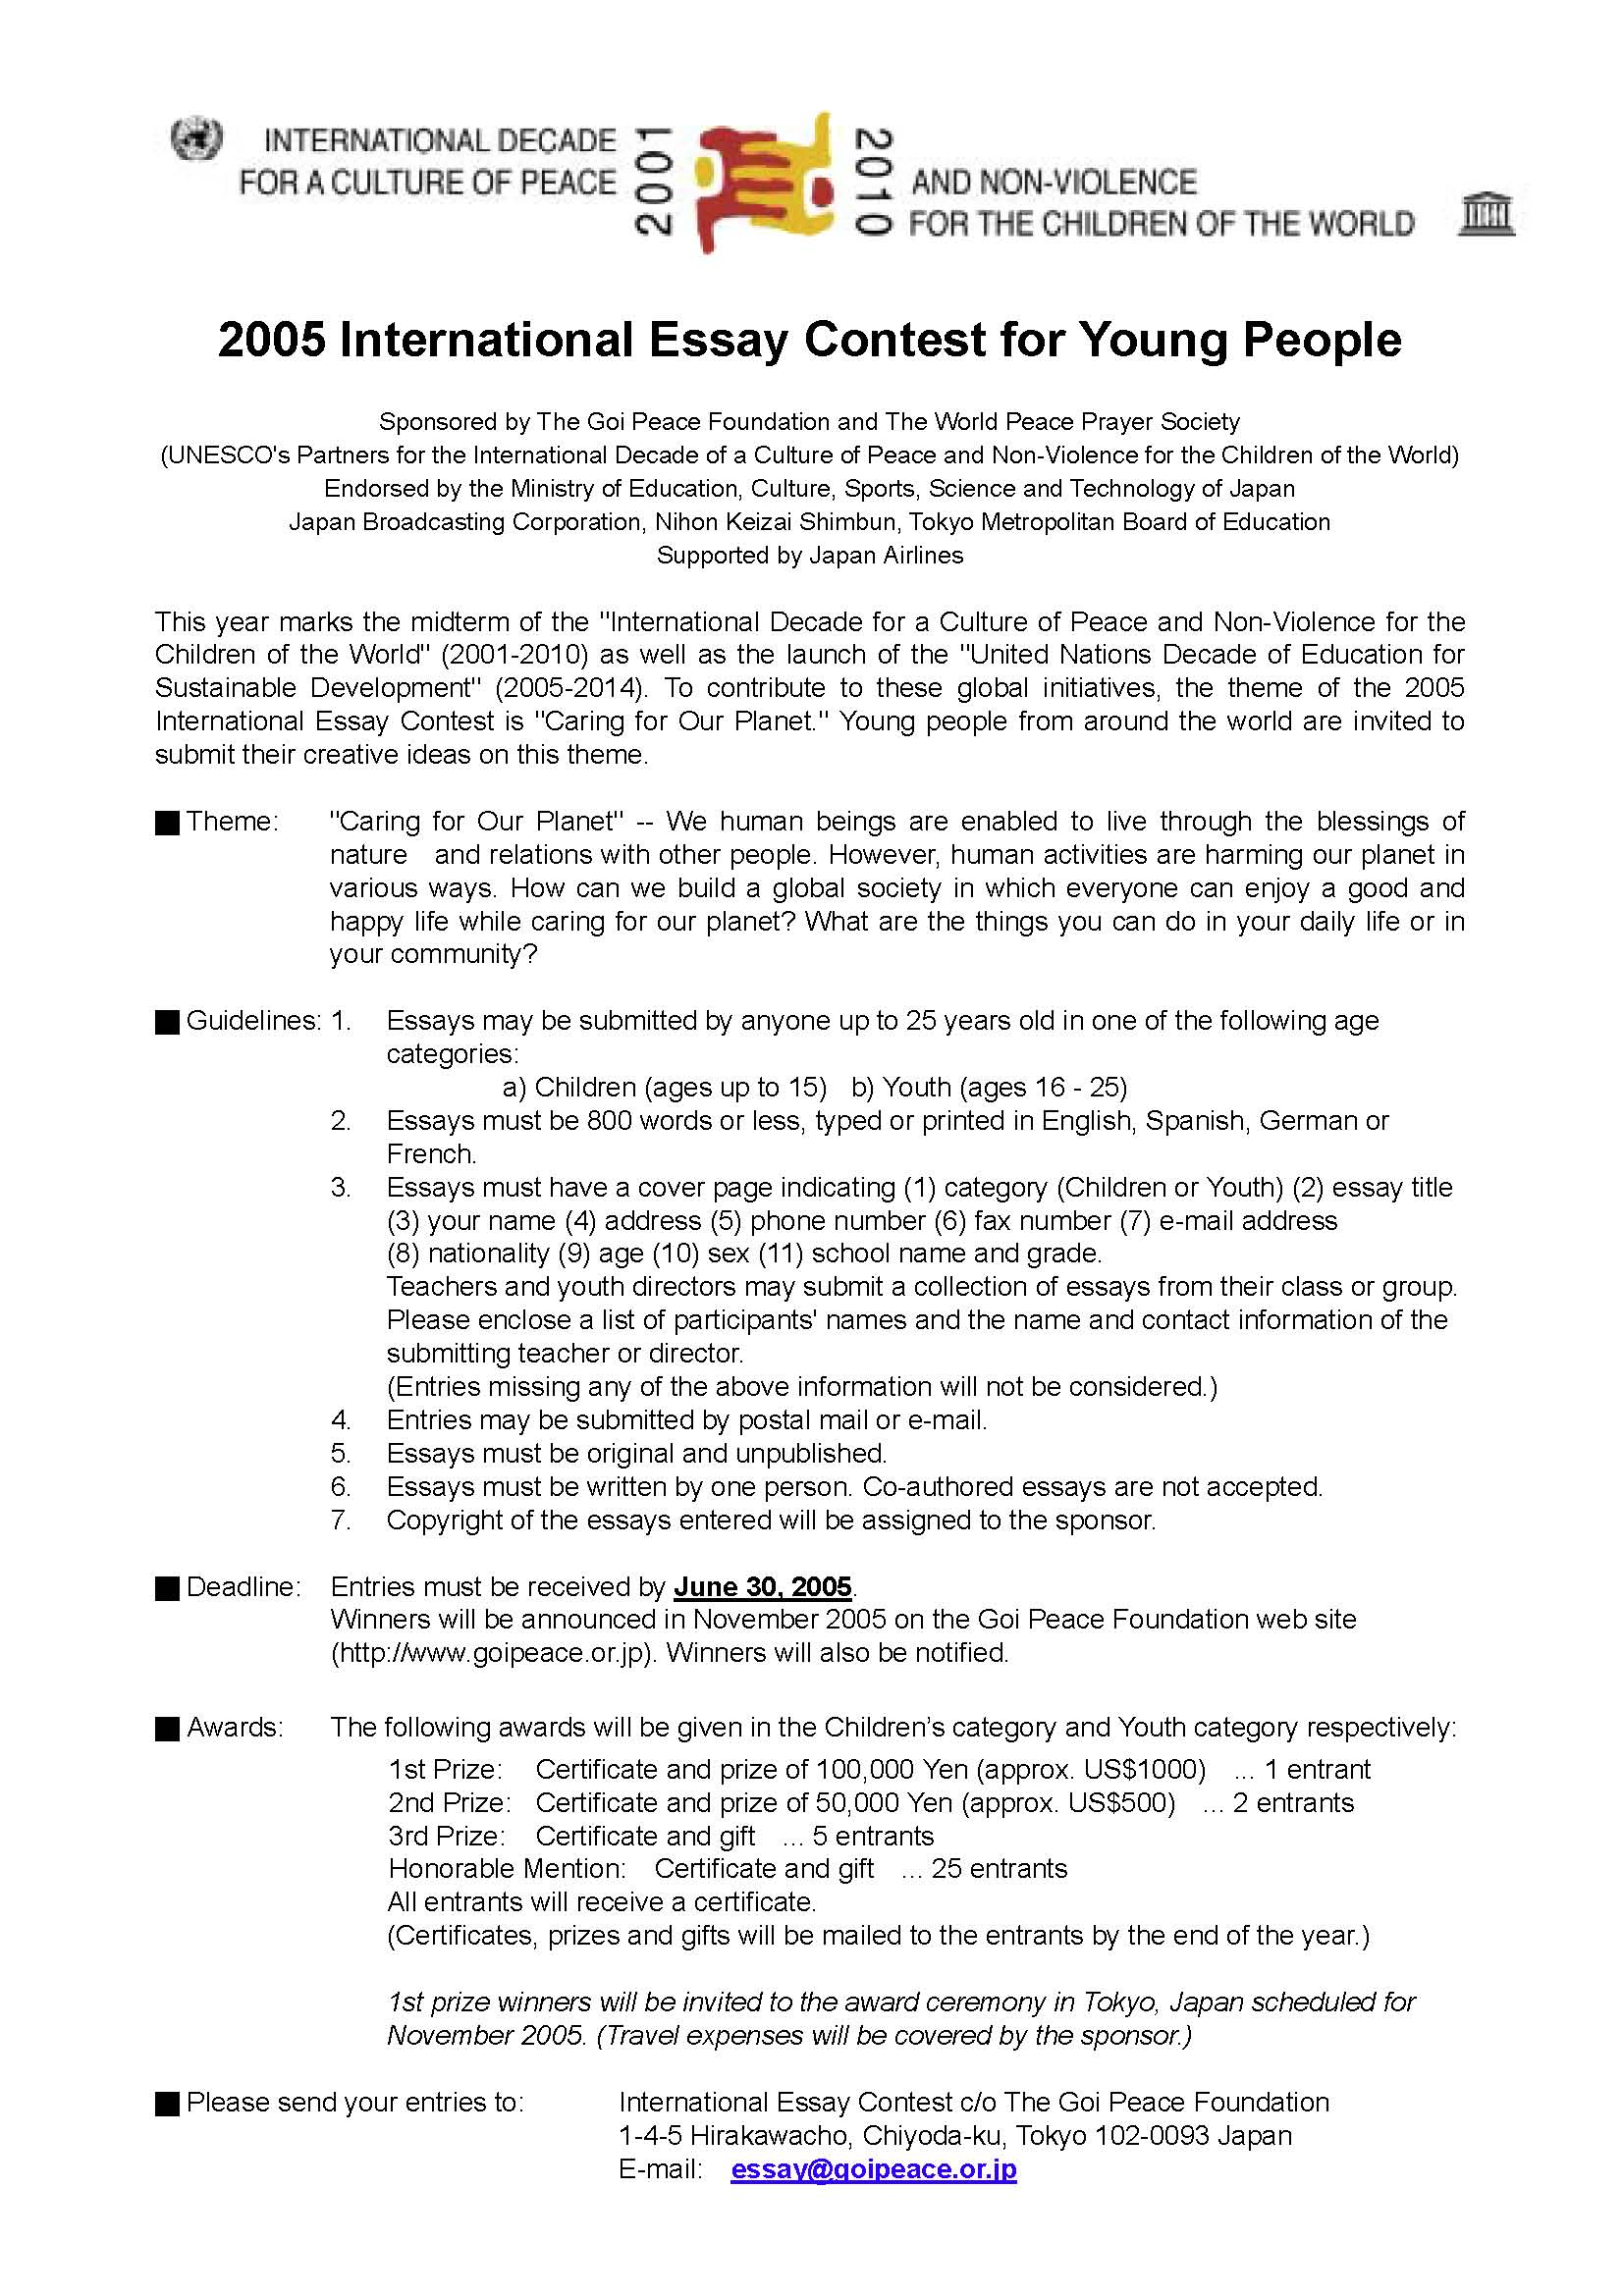 Essay For Science Past Contests The Goi Peace Foundation  Essay Thesis Statement Example also Proposal Essay Topic Science And Technology Essay Science And Literature Essay Science  Thesis Statement Example For Essays